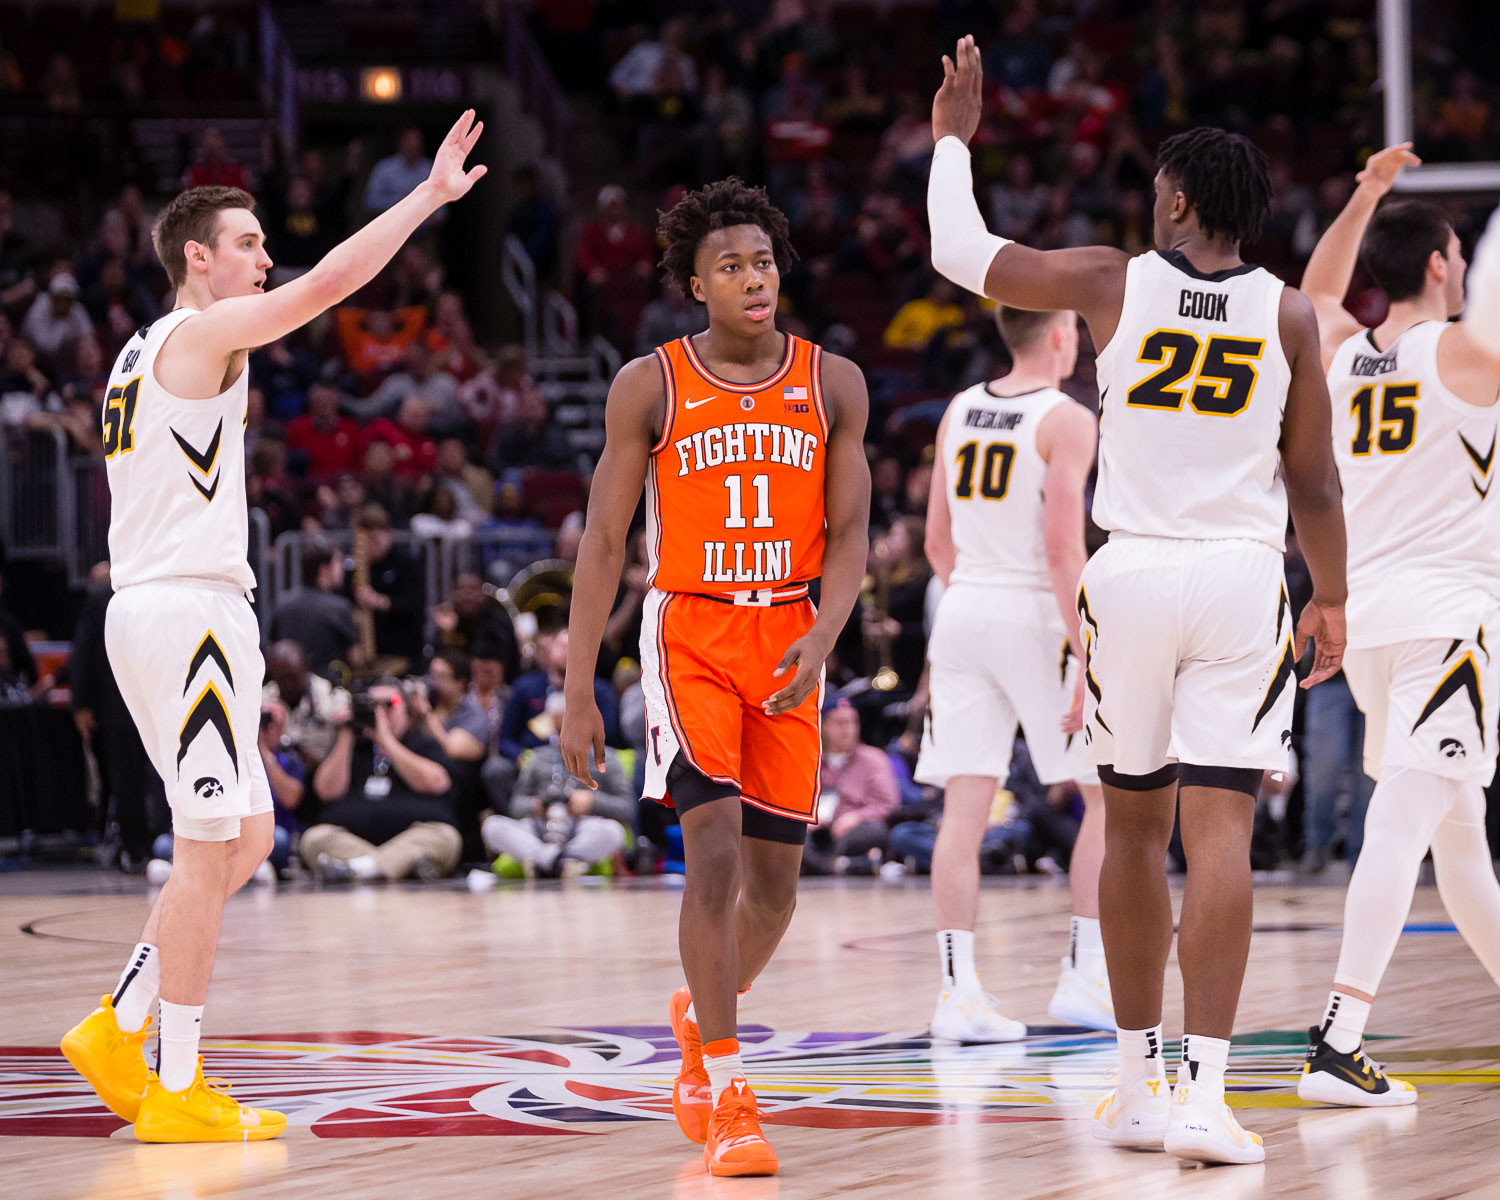 Illinois+guard+Ayo+Dosunmu+%2811%29+walks+back+to+the+bench+during+the+game+against+Iowa+in+the+second+round+of+the+Big+Ten+Tournament+at+the+United+Center+on+Thursday%2C+March+14.+The+Illini+lost+83-62.